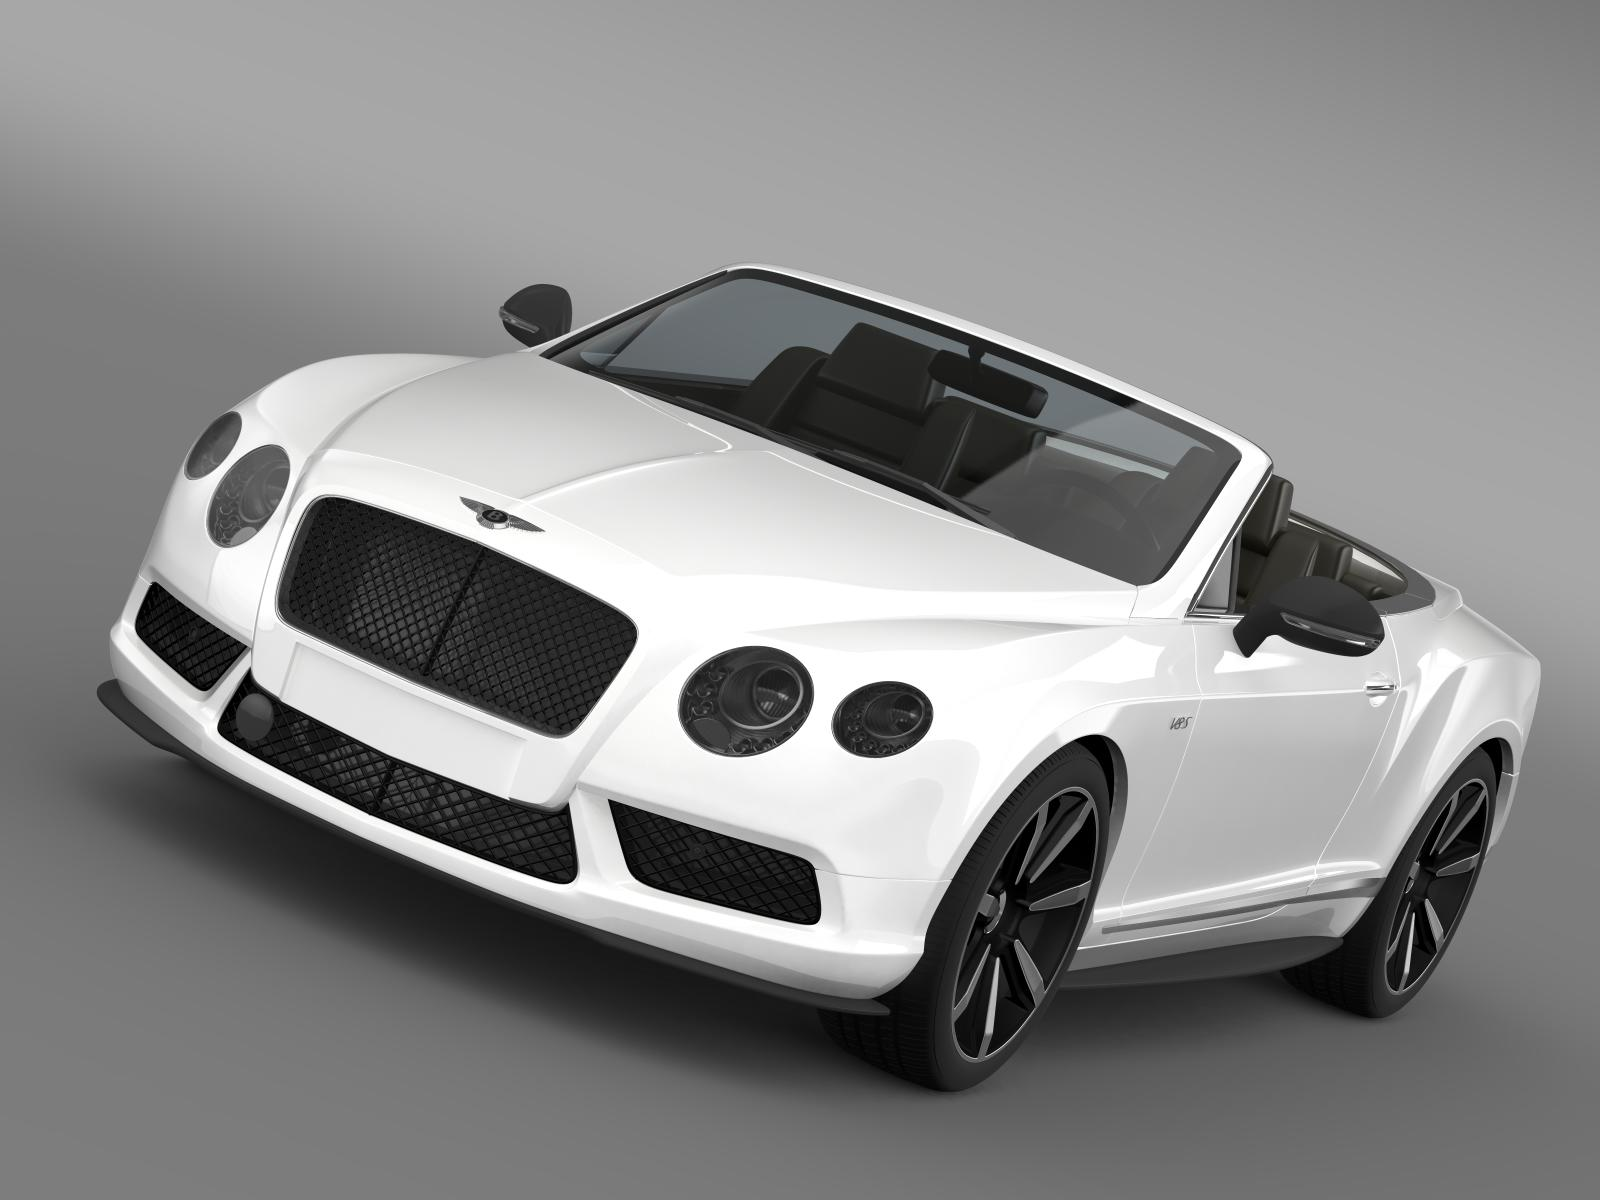 bentley continental gt v8 s convertible 2014 3d model 3ds max fbx c4d lwo ma mb hrc xsi obj 164034